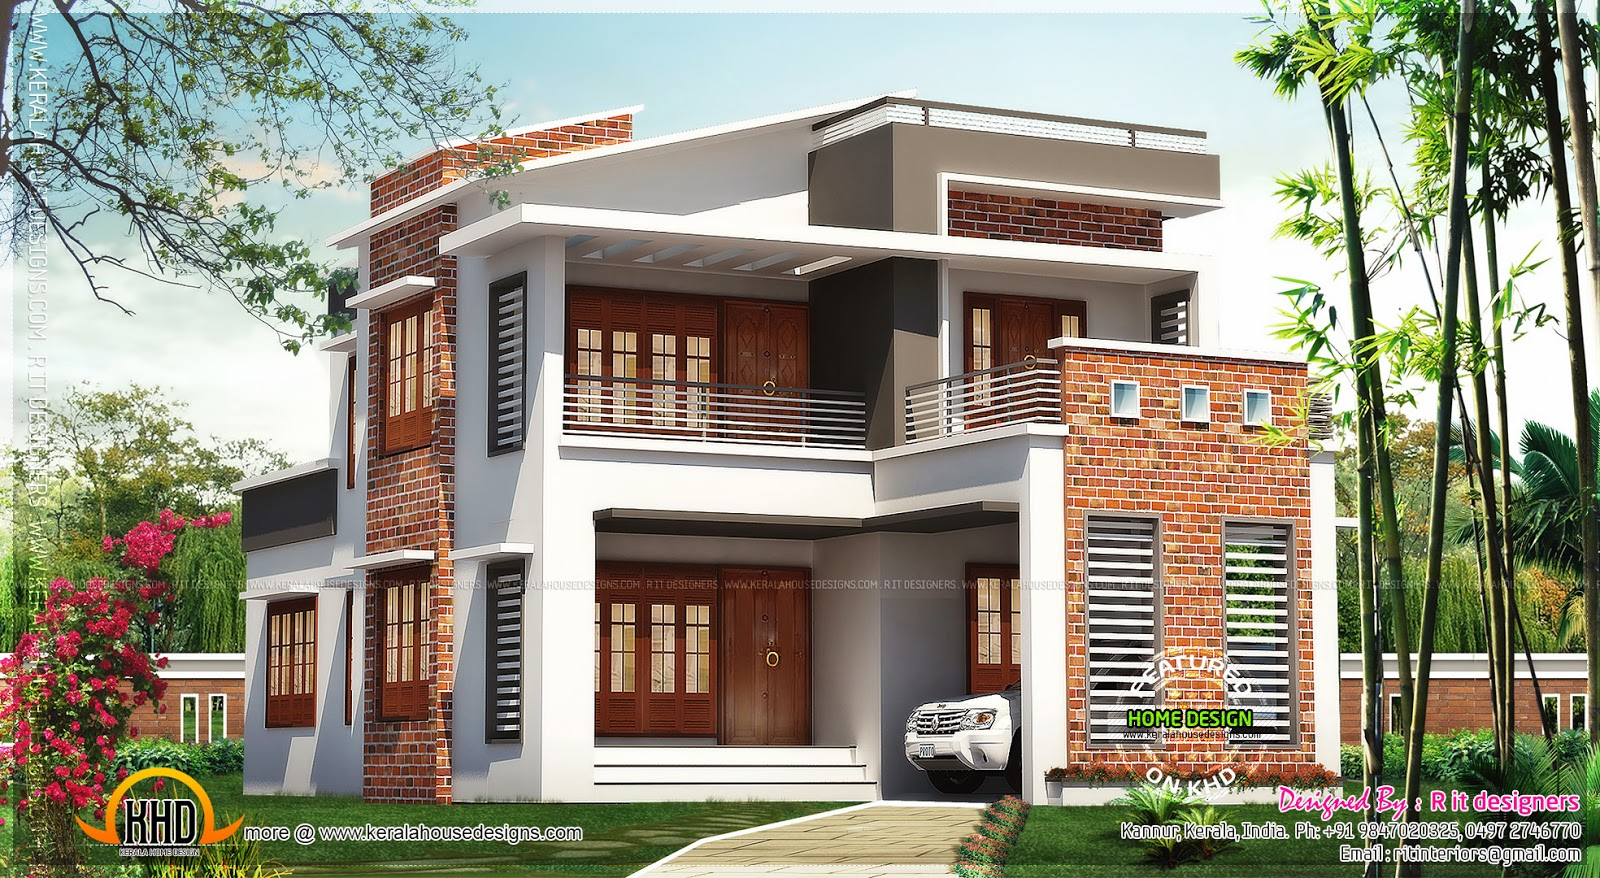 Brick mix house exterior design Kerala